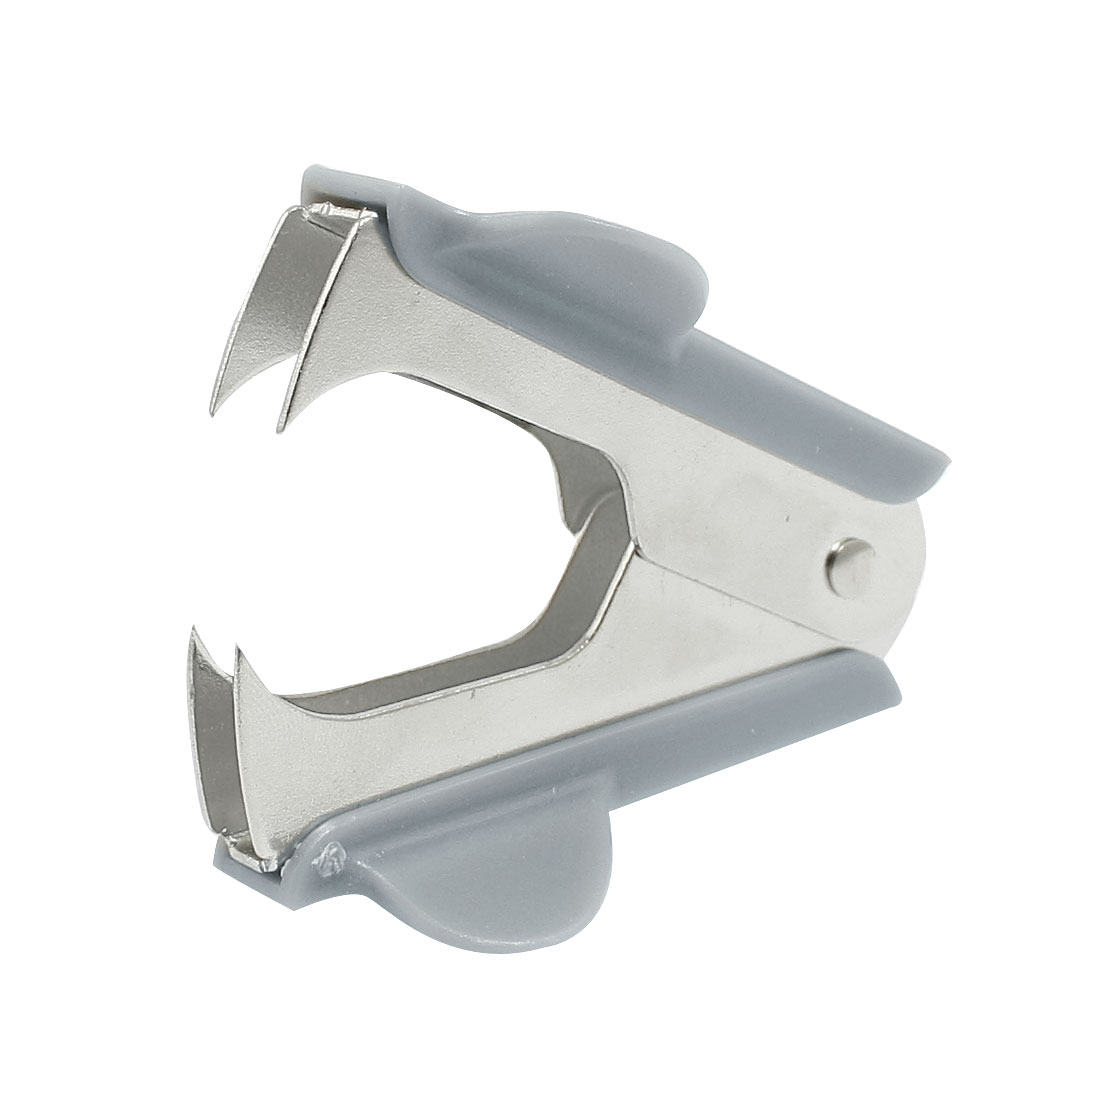 Office School Stationery Gray Portable Jaw Style Staple Remover